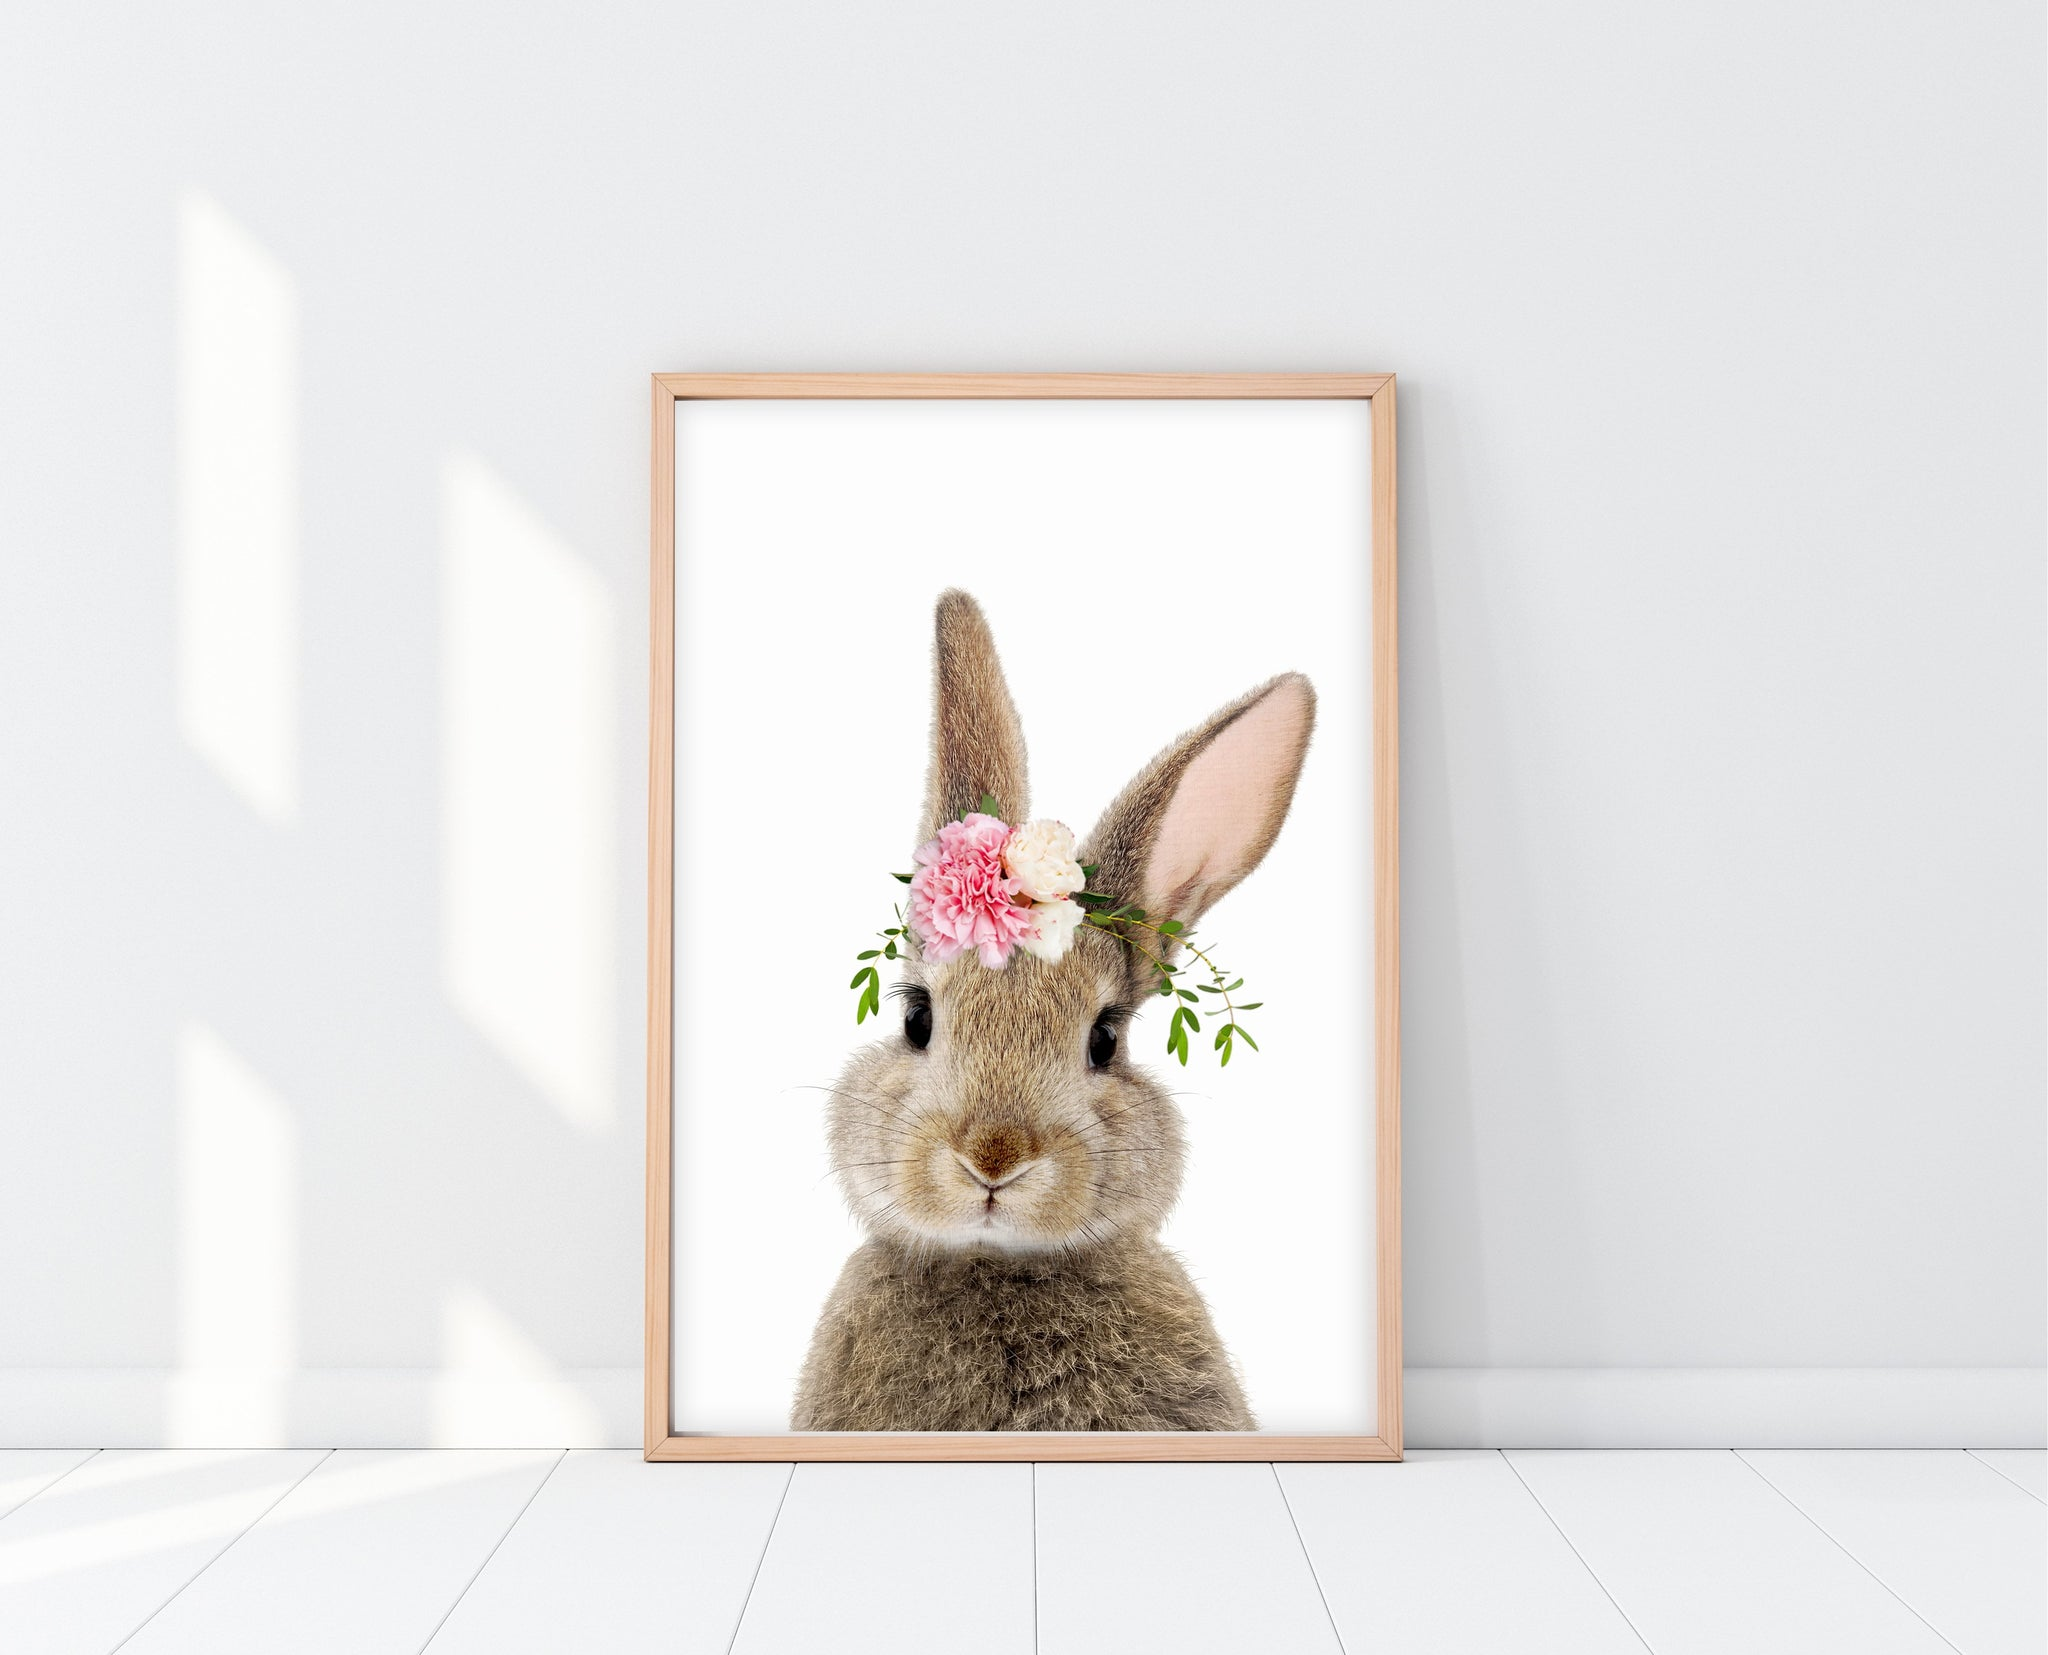 Nursery Girl Wall Art | Peek A Boo Bunny Print | Ollie + Hank  Edit alt text